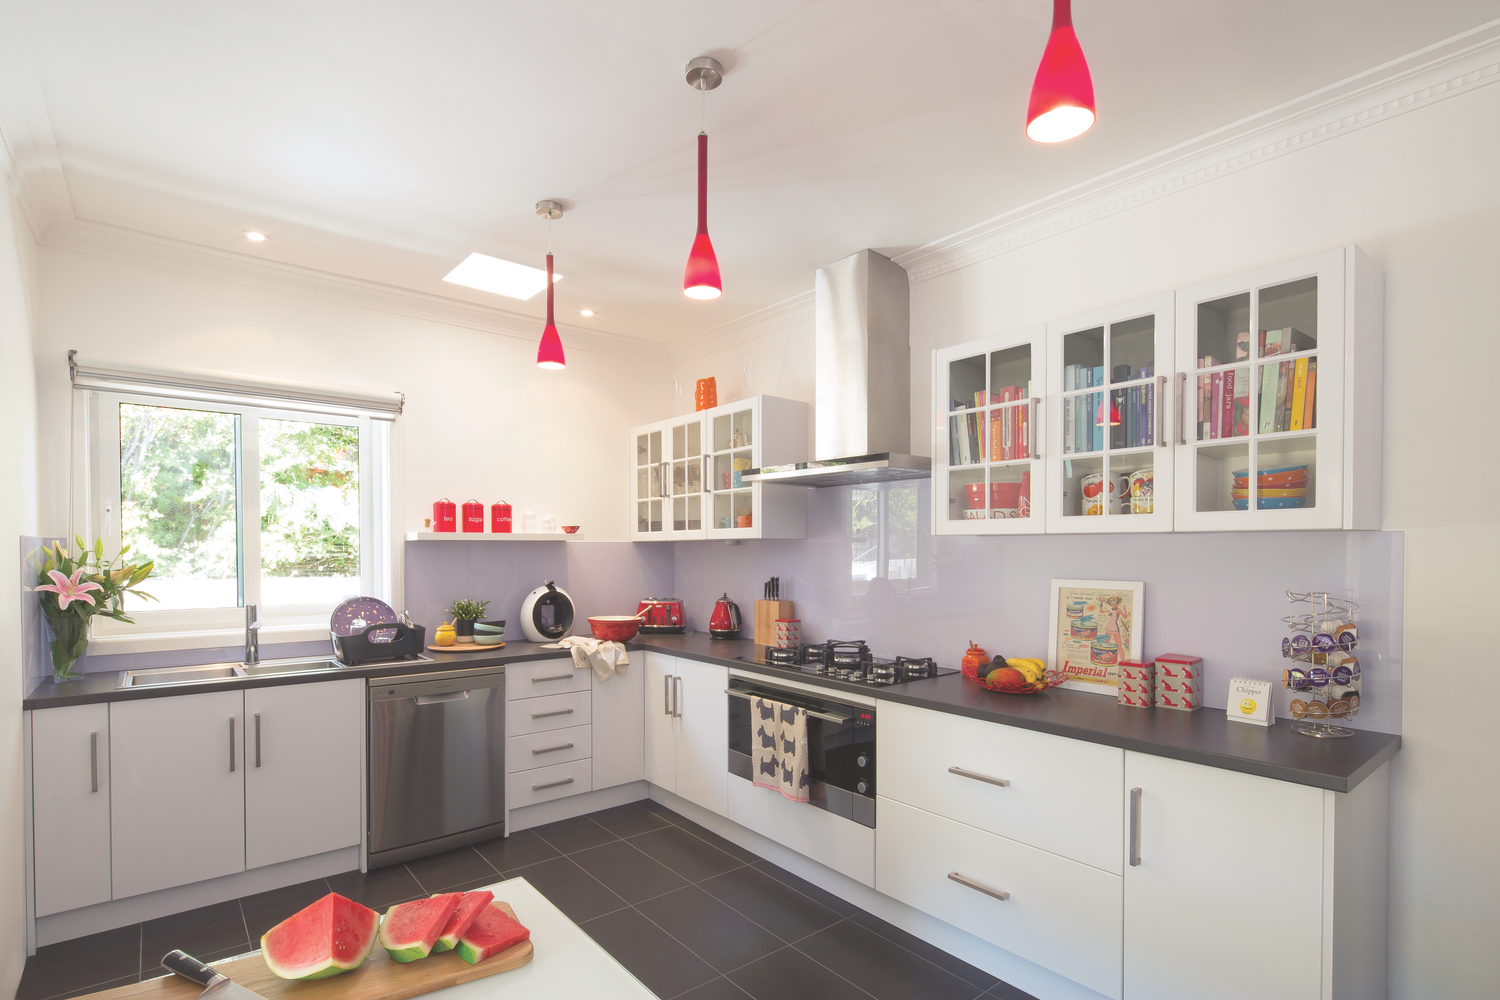 Flat Pack Kitchen Cupboards Fit For A Family Kitchen Inspiration And Ideas